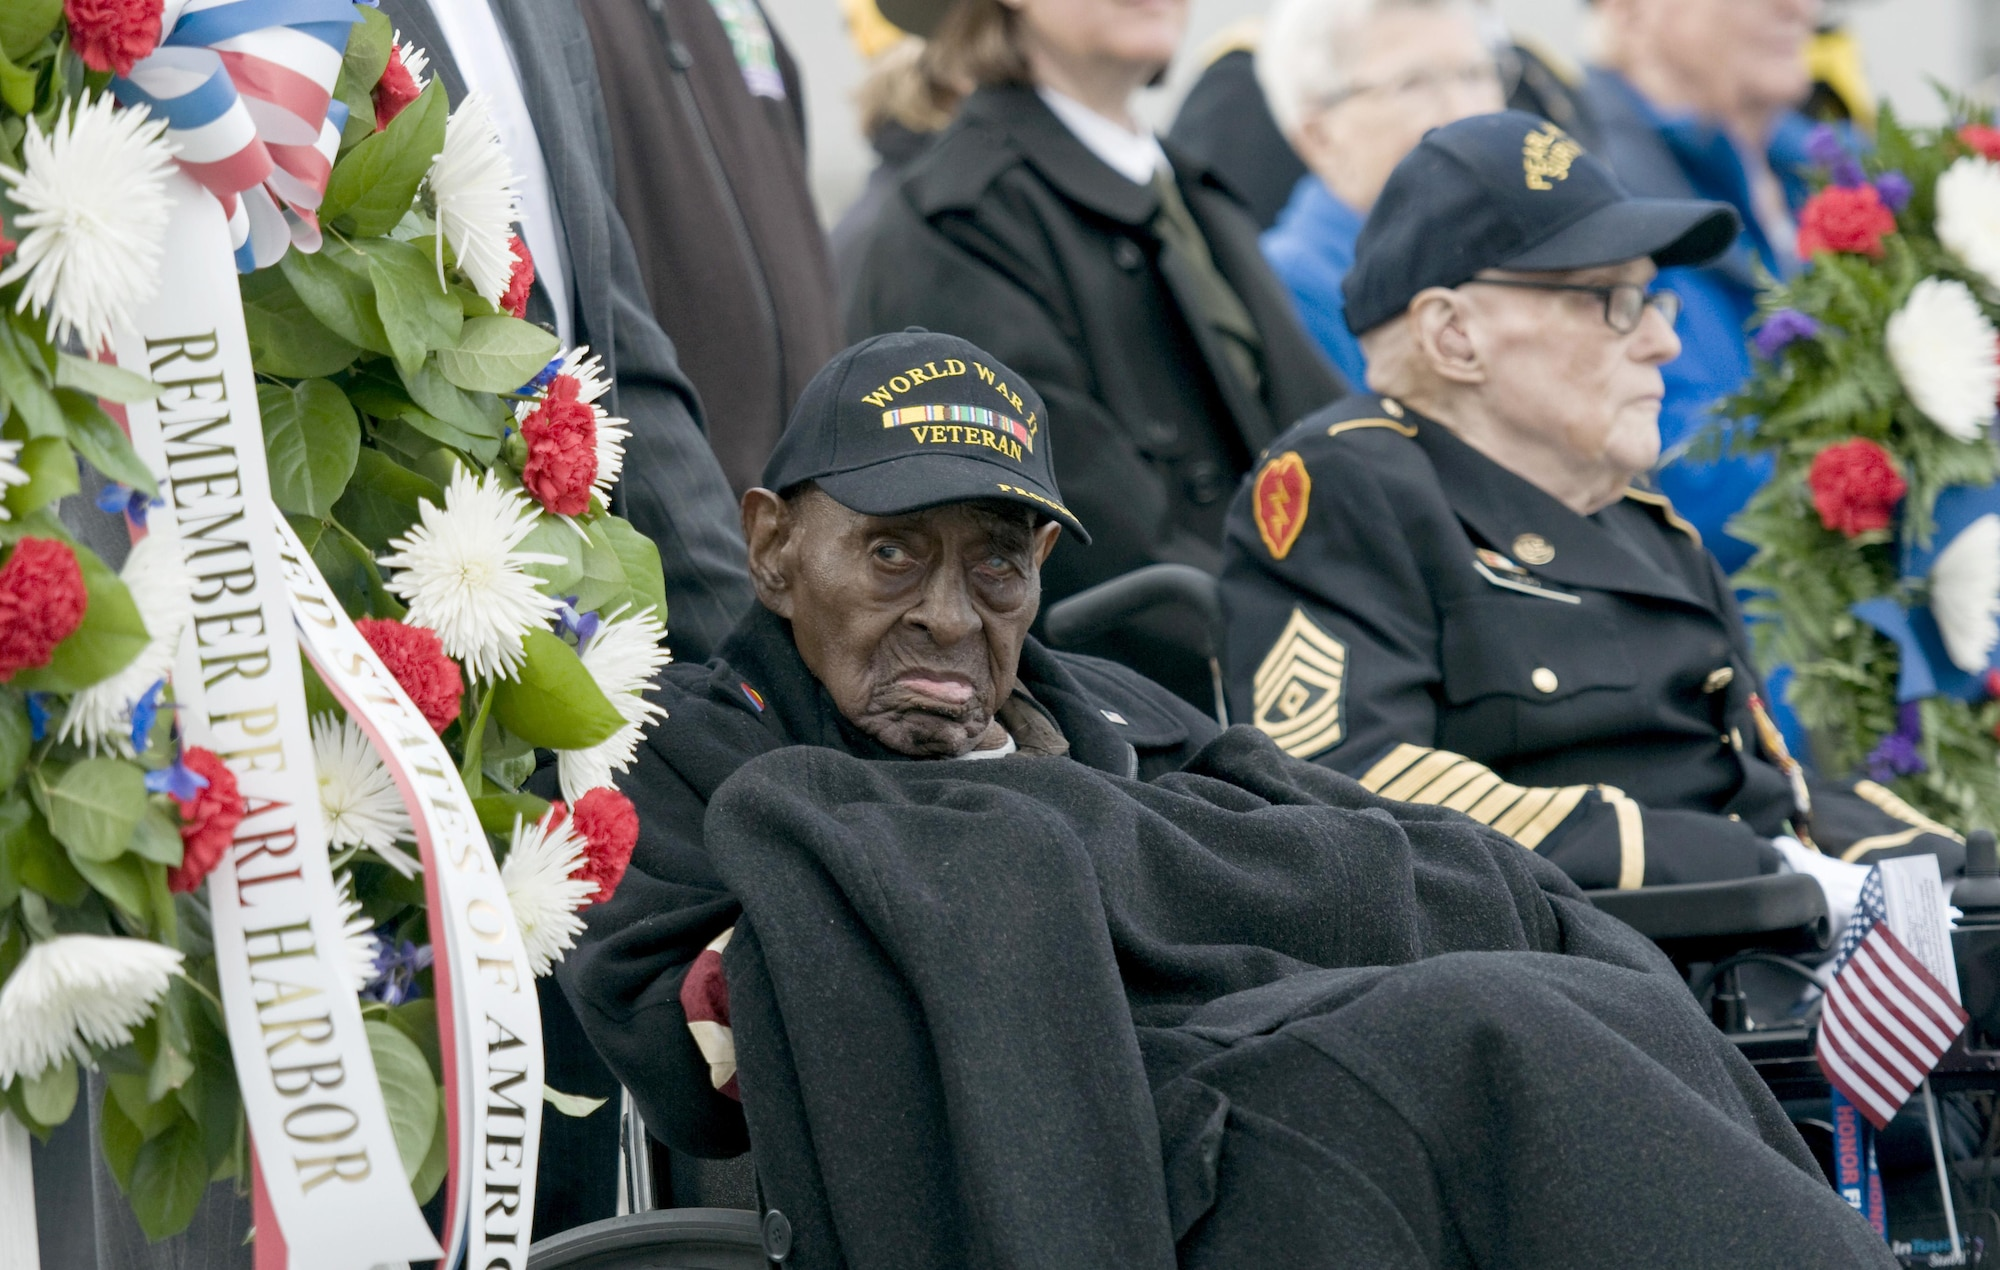 Frank Levingston, a 110-year-old Army veteran believed to be the nation's oldest living World War II veteran, attends a Pearl Harbor remembrance ceremony at the National WWII Memorial on Dec. 7, 2015, in Washington, D.C. (U.S. Air Force photo/Sean Kimmons)